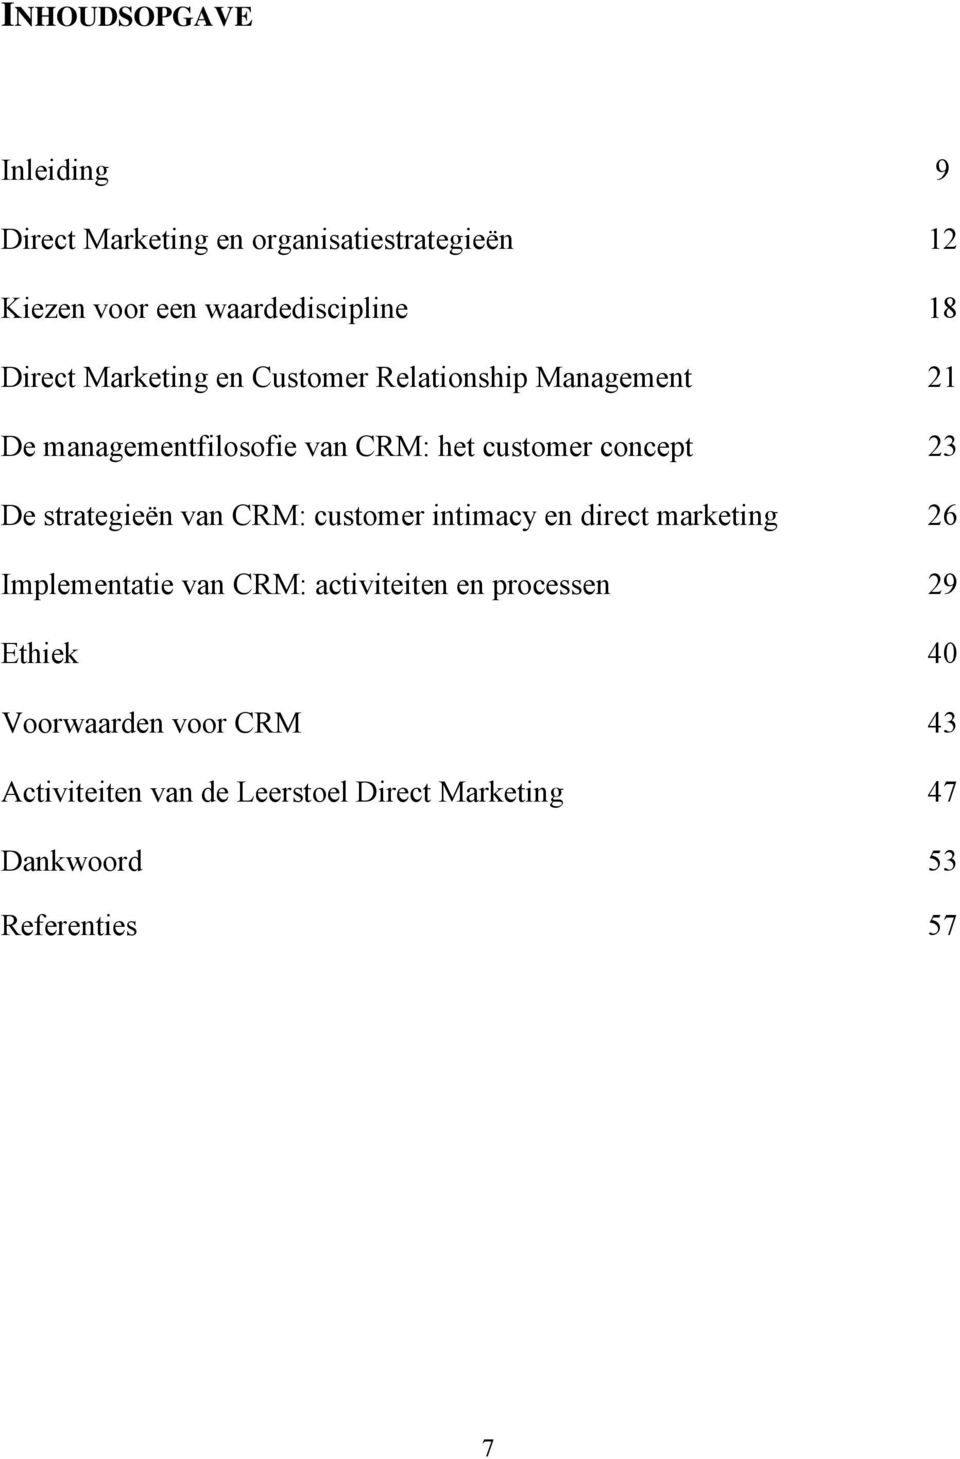 De strategieën van CRM: customer intimacy en direct marketing 26 Implementatie van CRM: activiteiten en